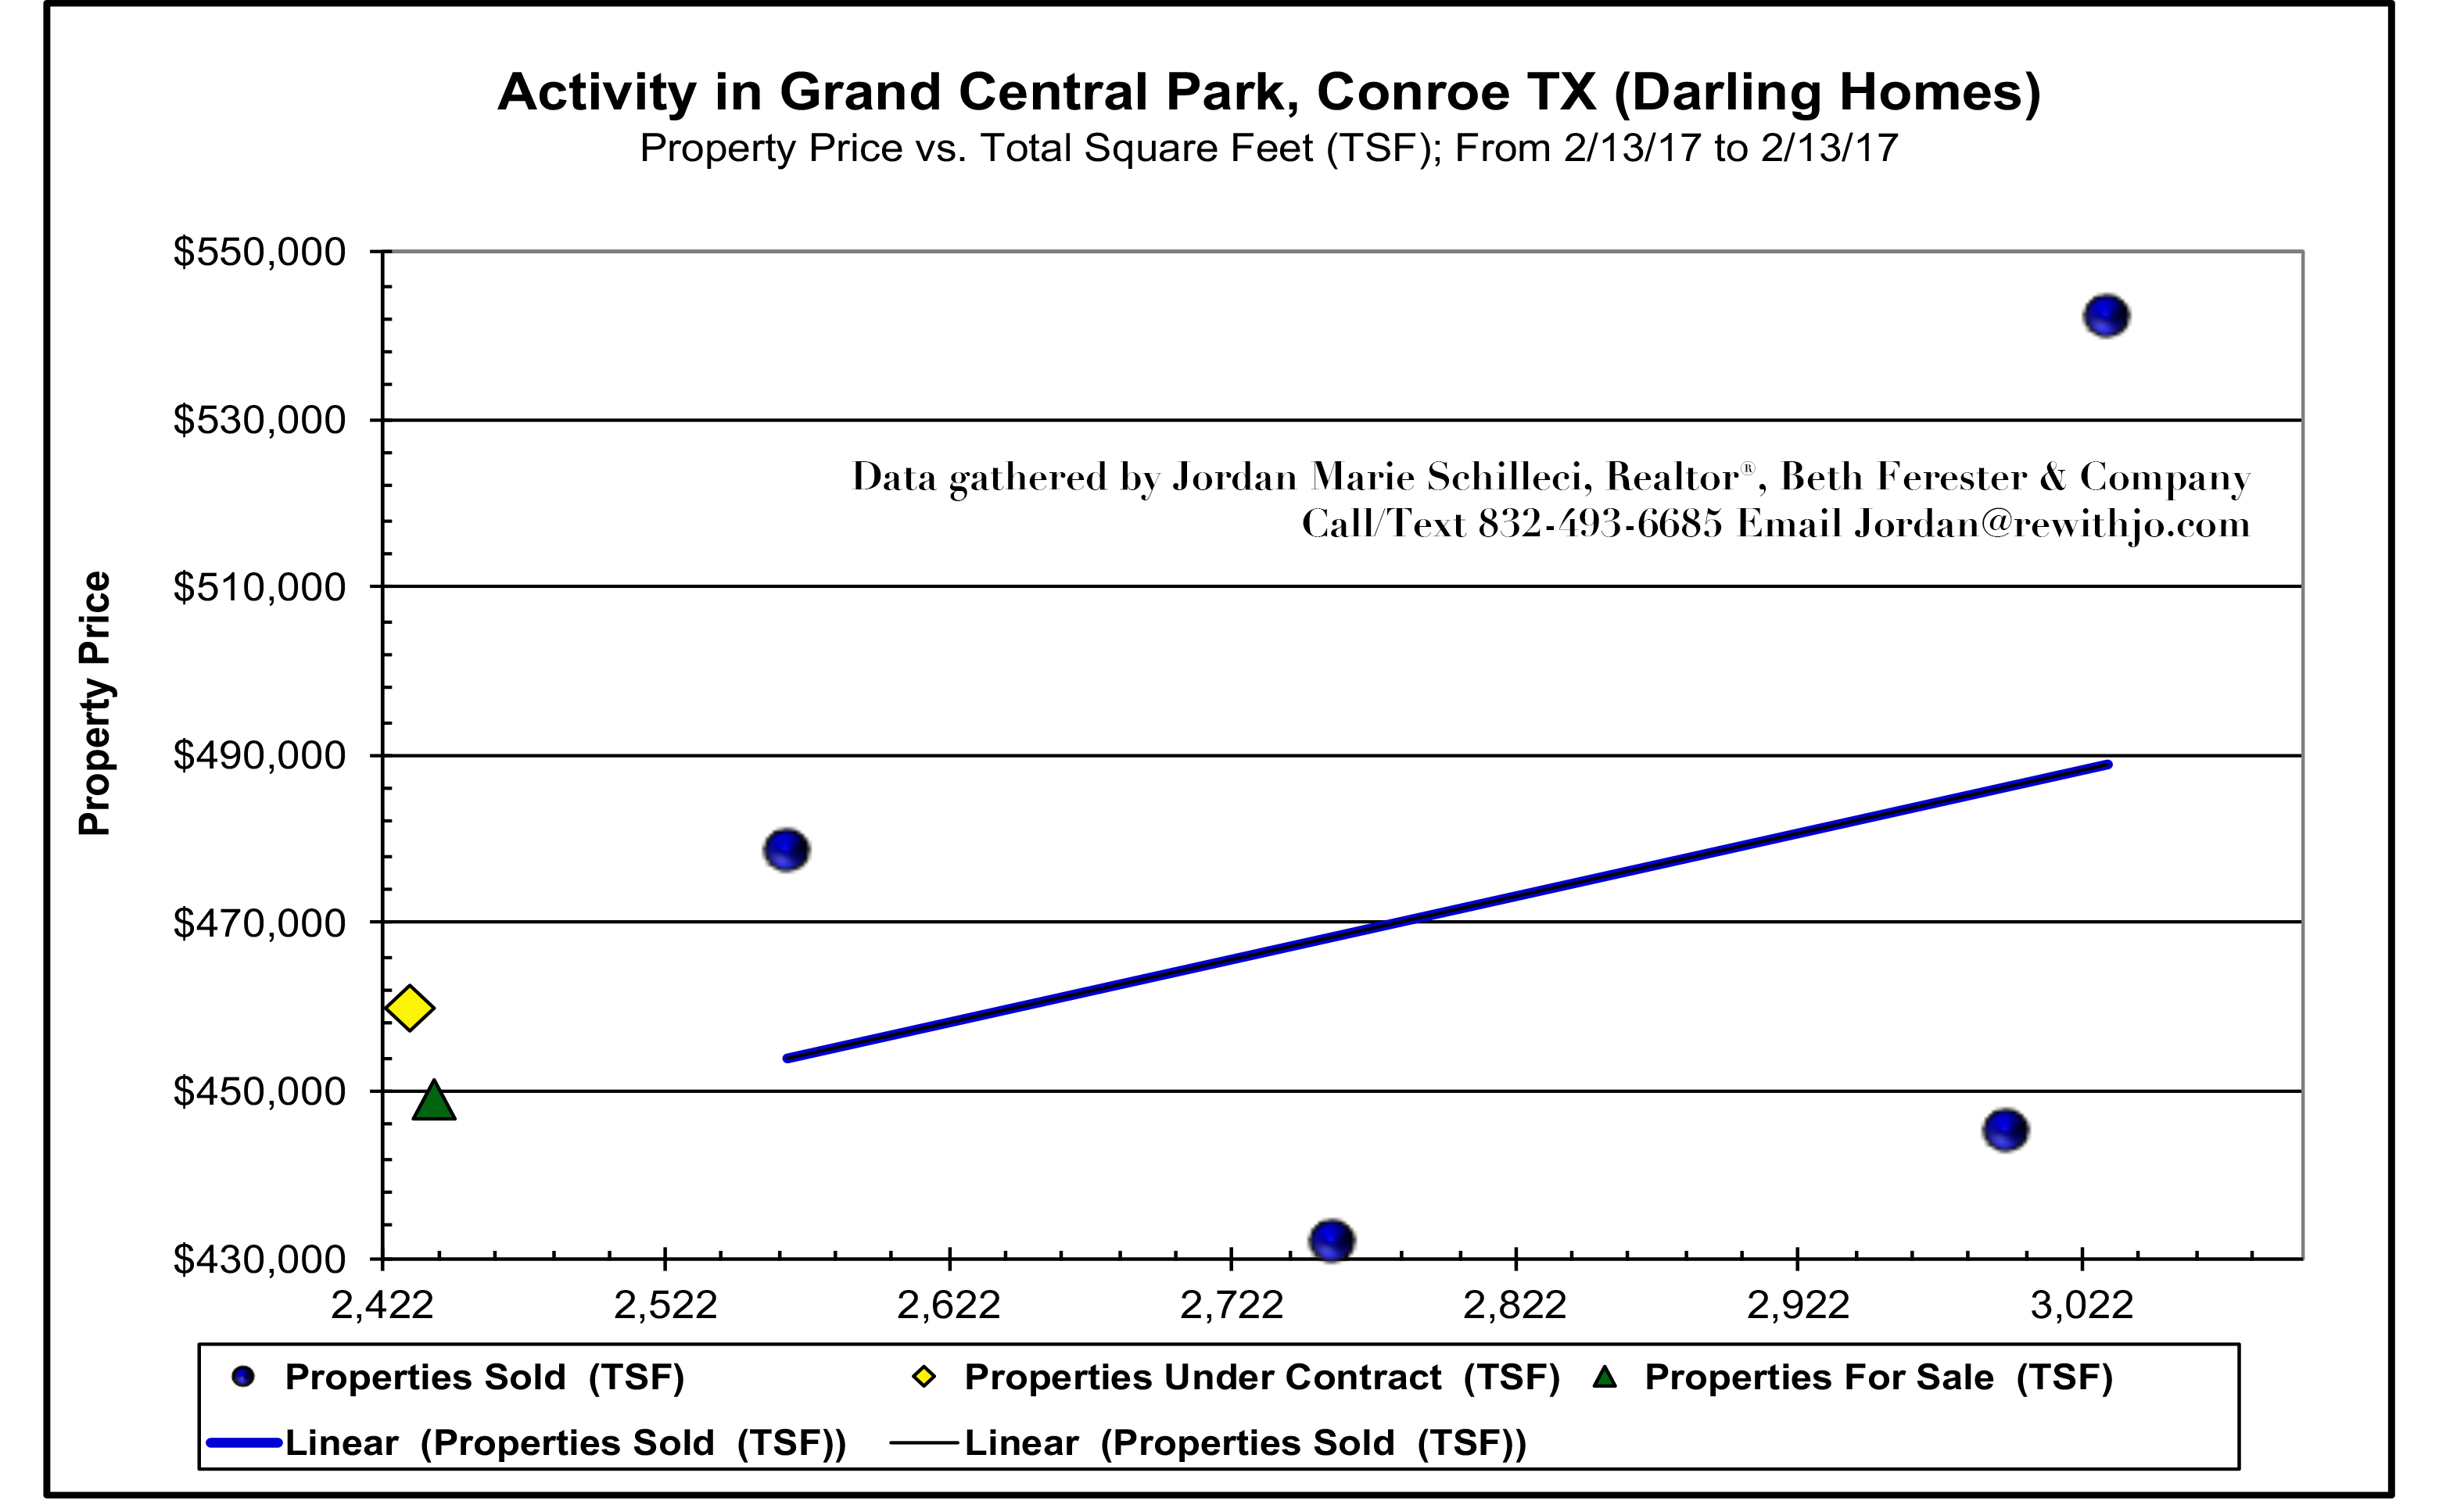 Darling Homes - Homes sold in Grand Central Park - October 2017